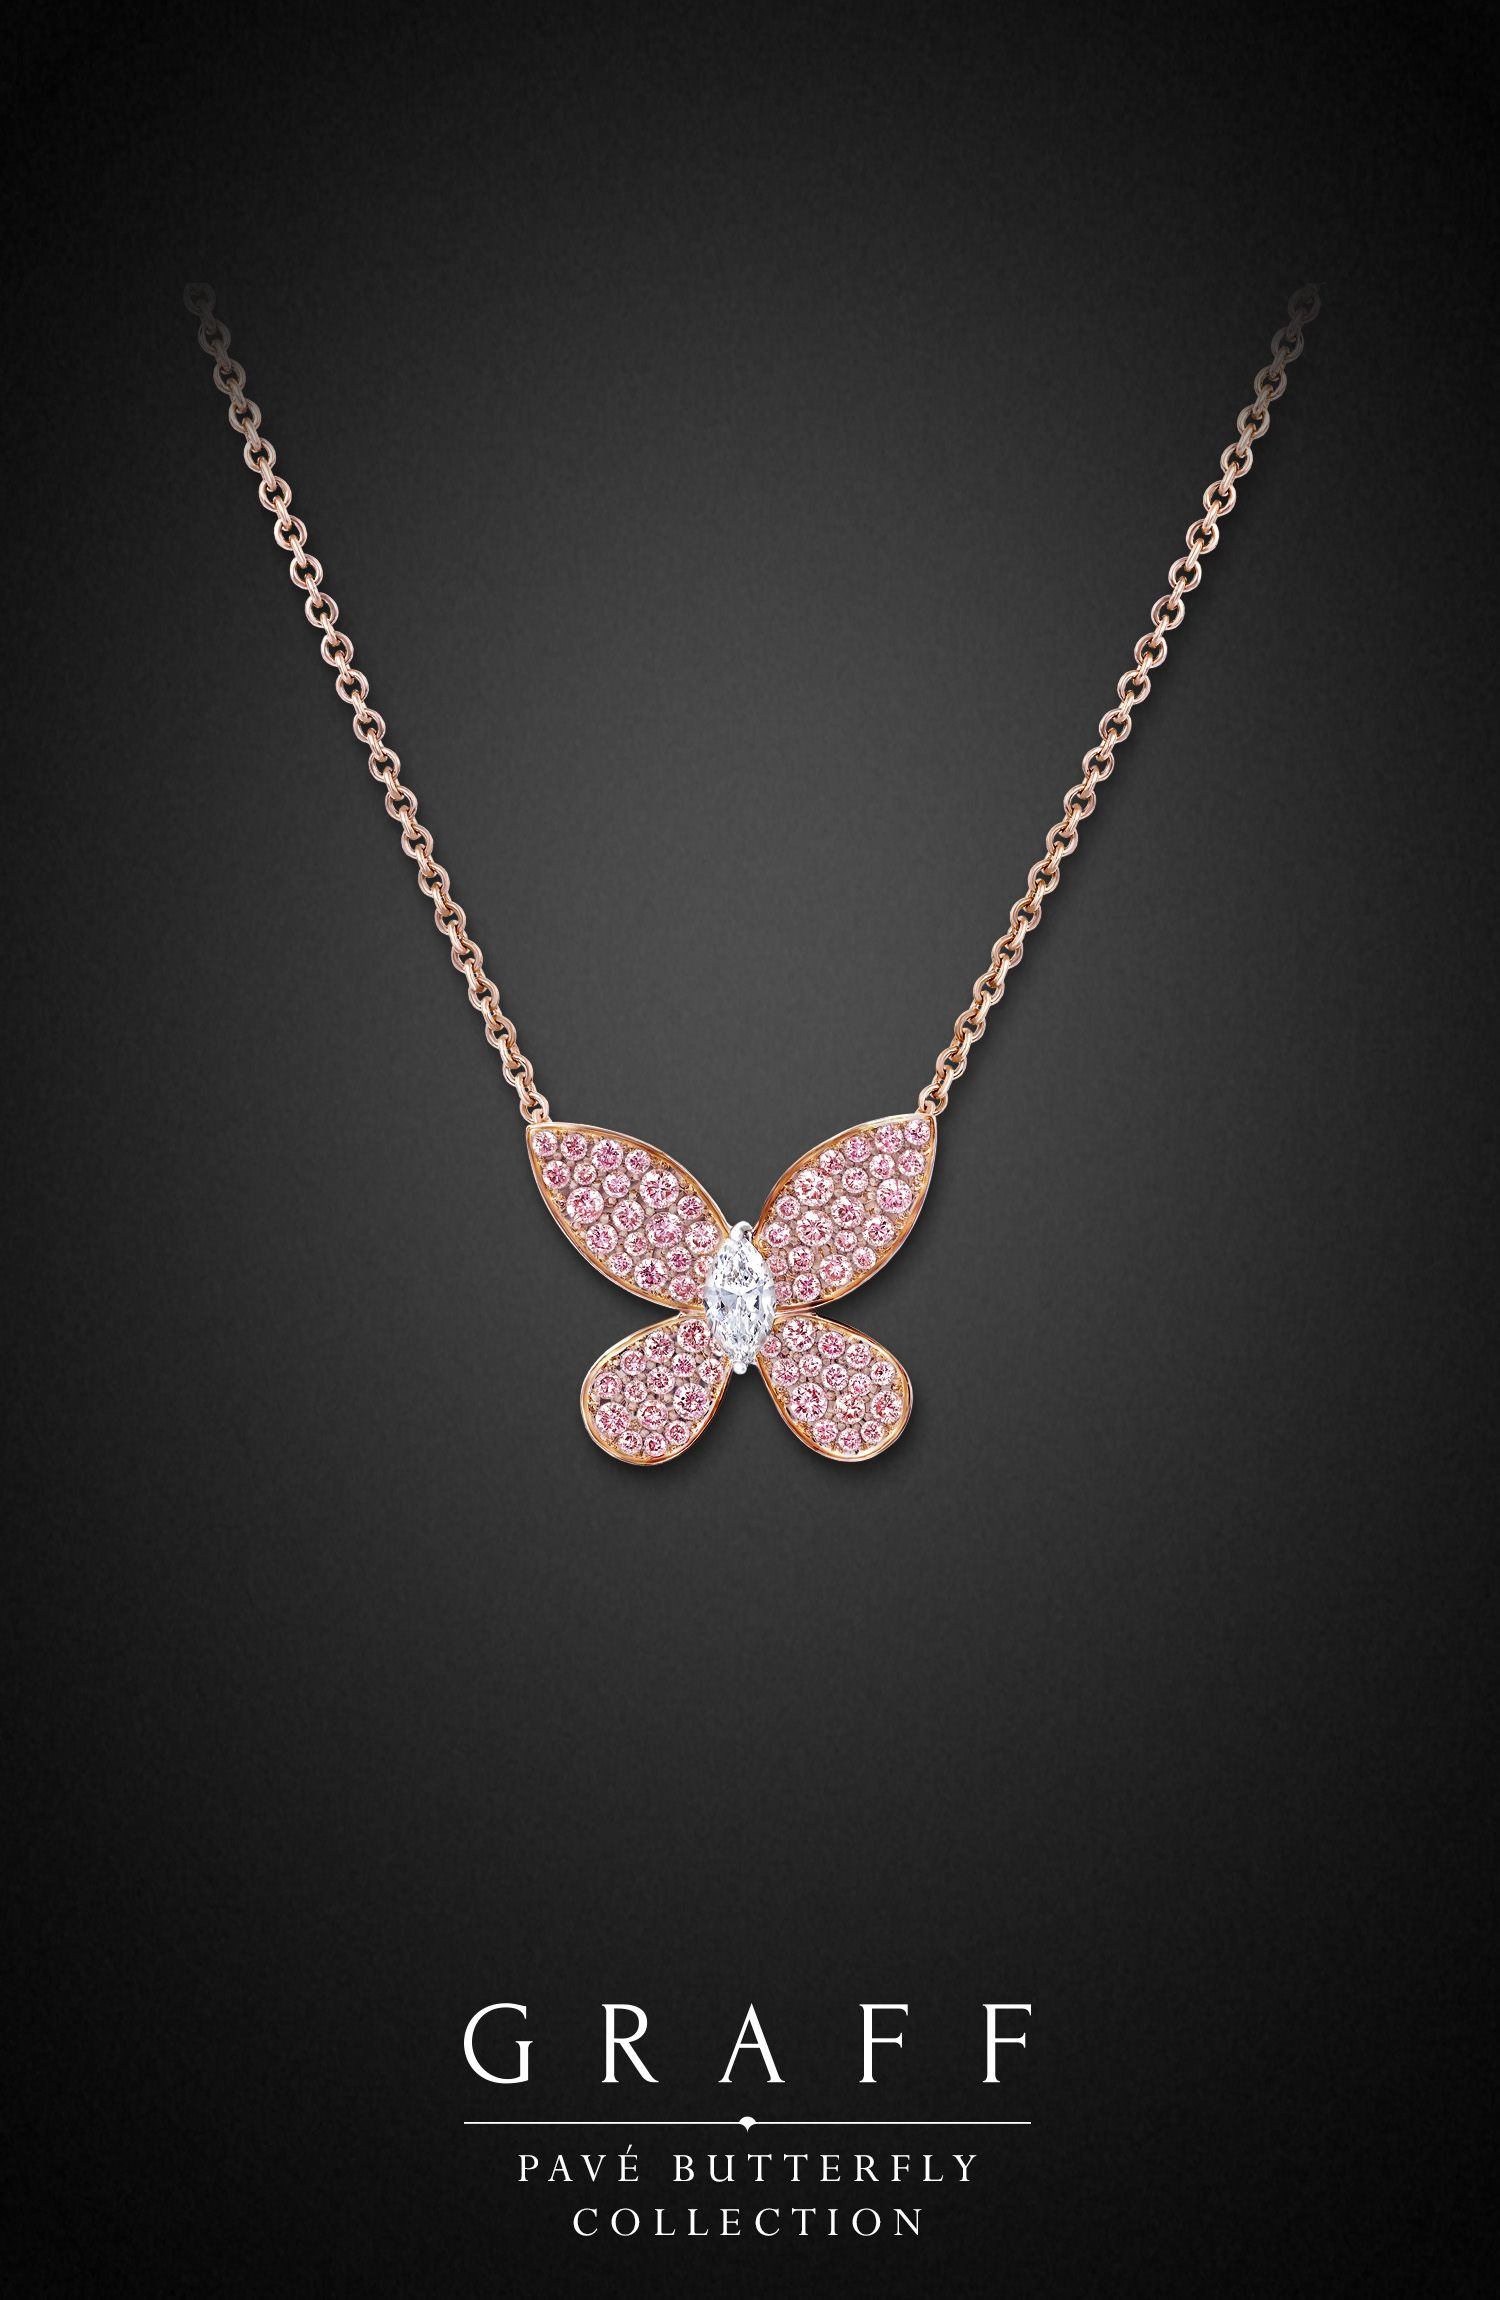 Pavé Butterfly Pendant | Graff Diamonds | Diamond, Diamond Pendant Throughout 2020 Pink Pavé Butterfly Collier Necklaces (View 2 of 25)